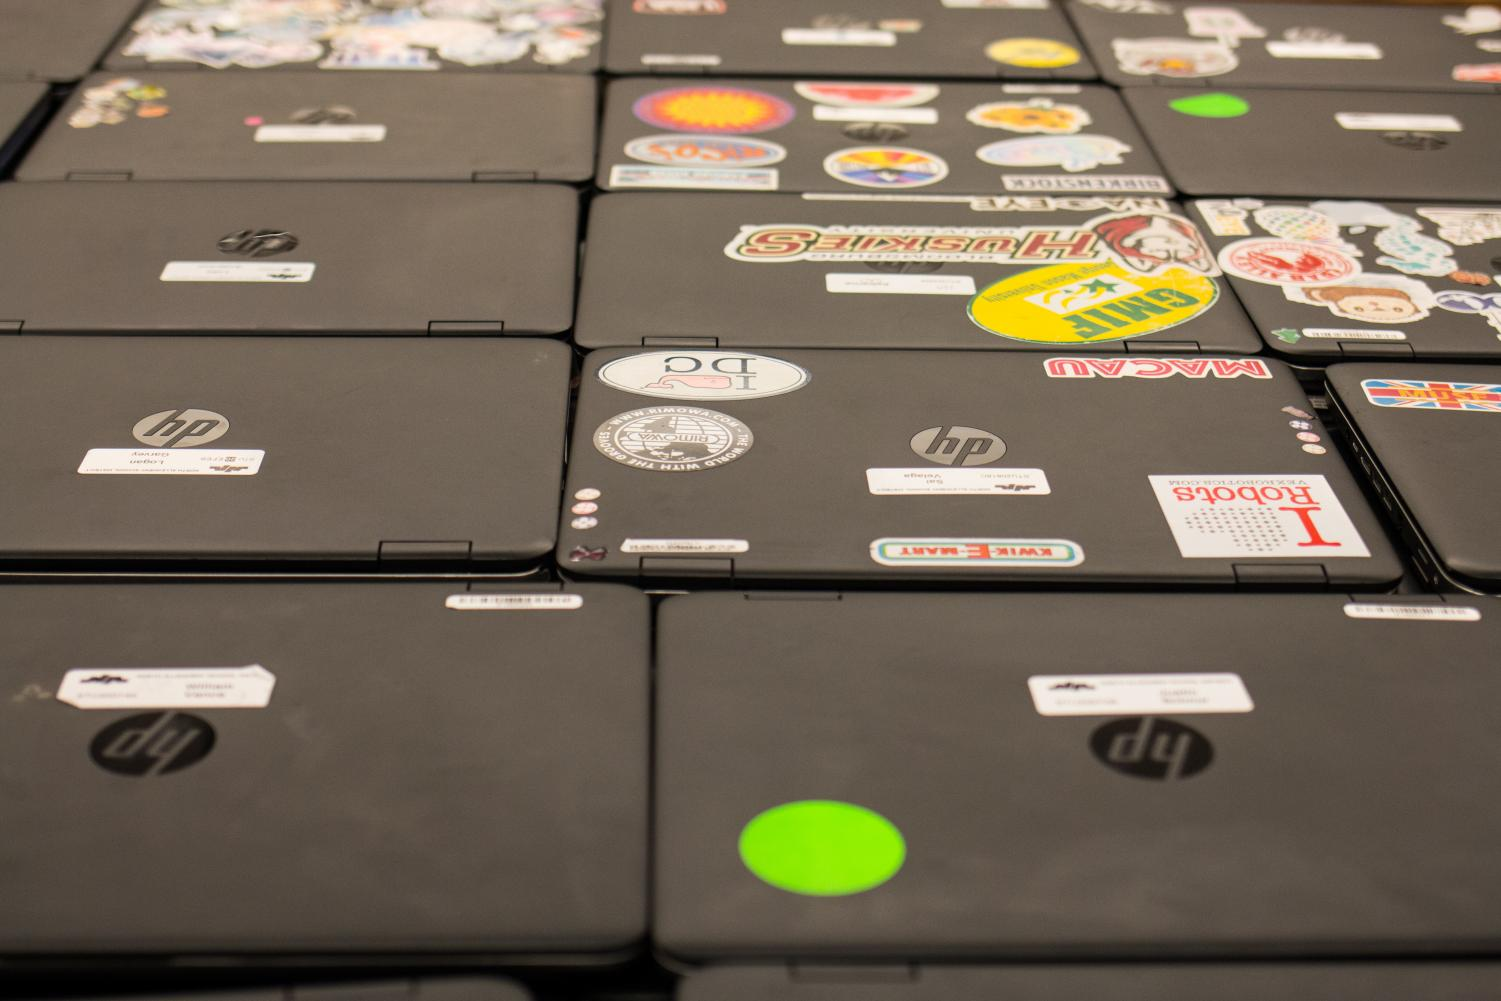 Nearly 700 student laptops were collected during 1st period in order for Technology Services to conduct battery tests in response to an HP recall late yesterday.